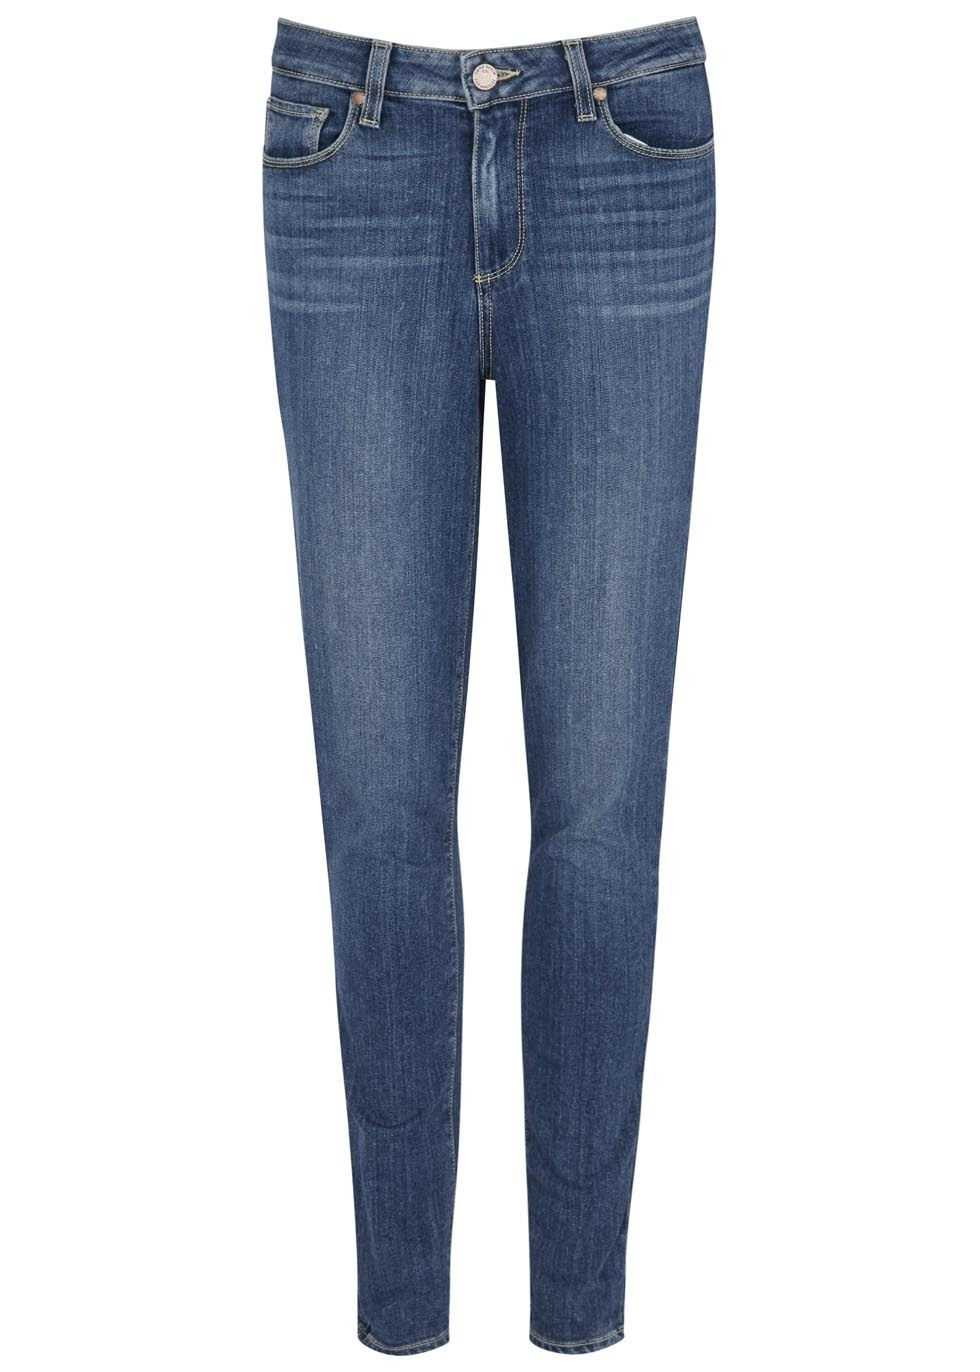 Hoxton Cropped Skinny Jeans - style: skinny leg; length: standard; pattern: plain; pocket detail: traditional 5 pocket; waist: mid/regular rise; predominant colour: navy; occasions: casual; fibres: cotton - stretch; jeans detail: whiskering; texture group: denim; pattern type: fabric; season: s/s 2016; wardrobe: basic